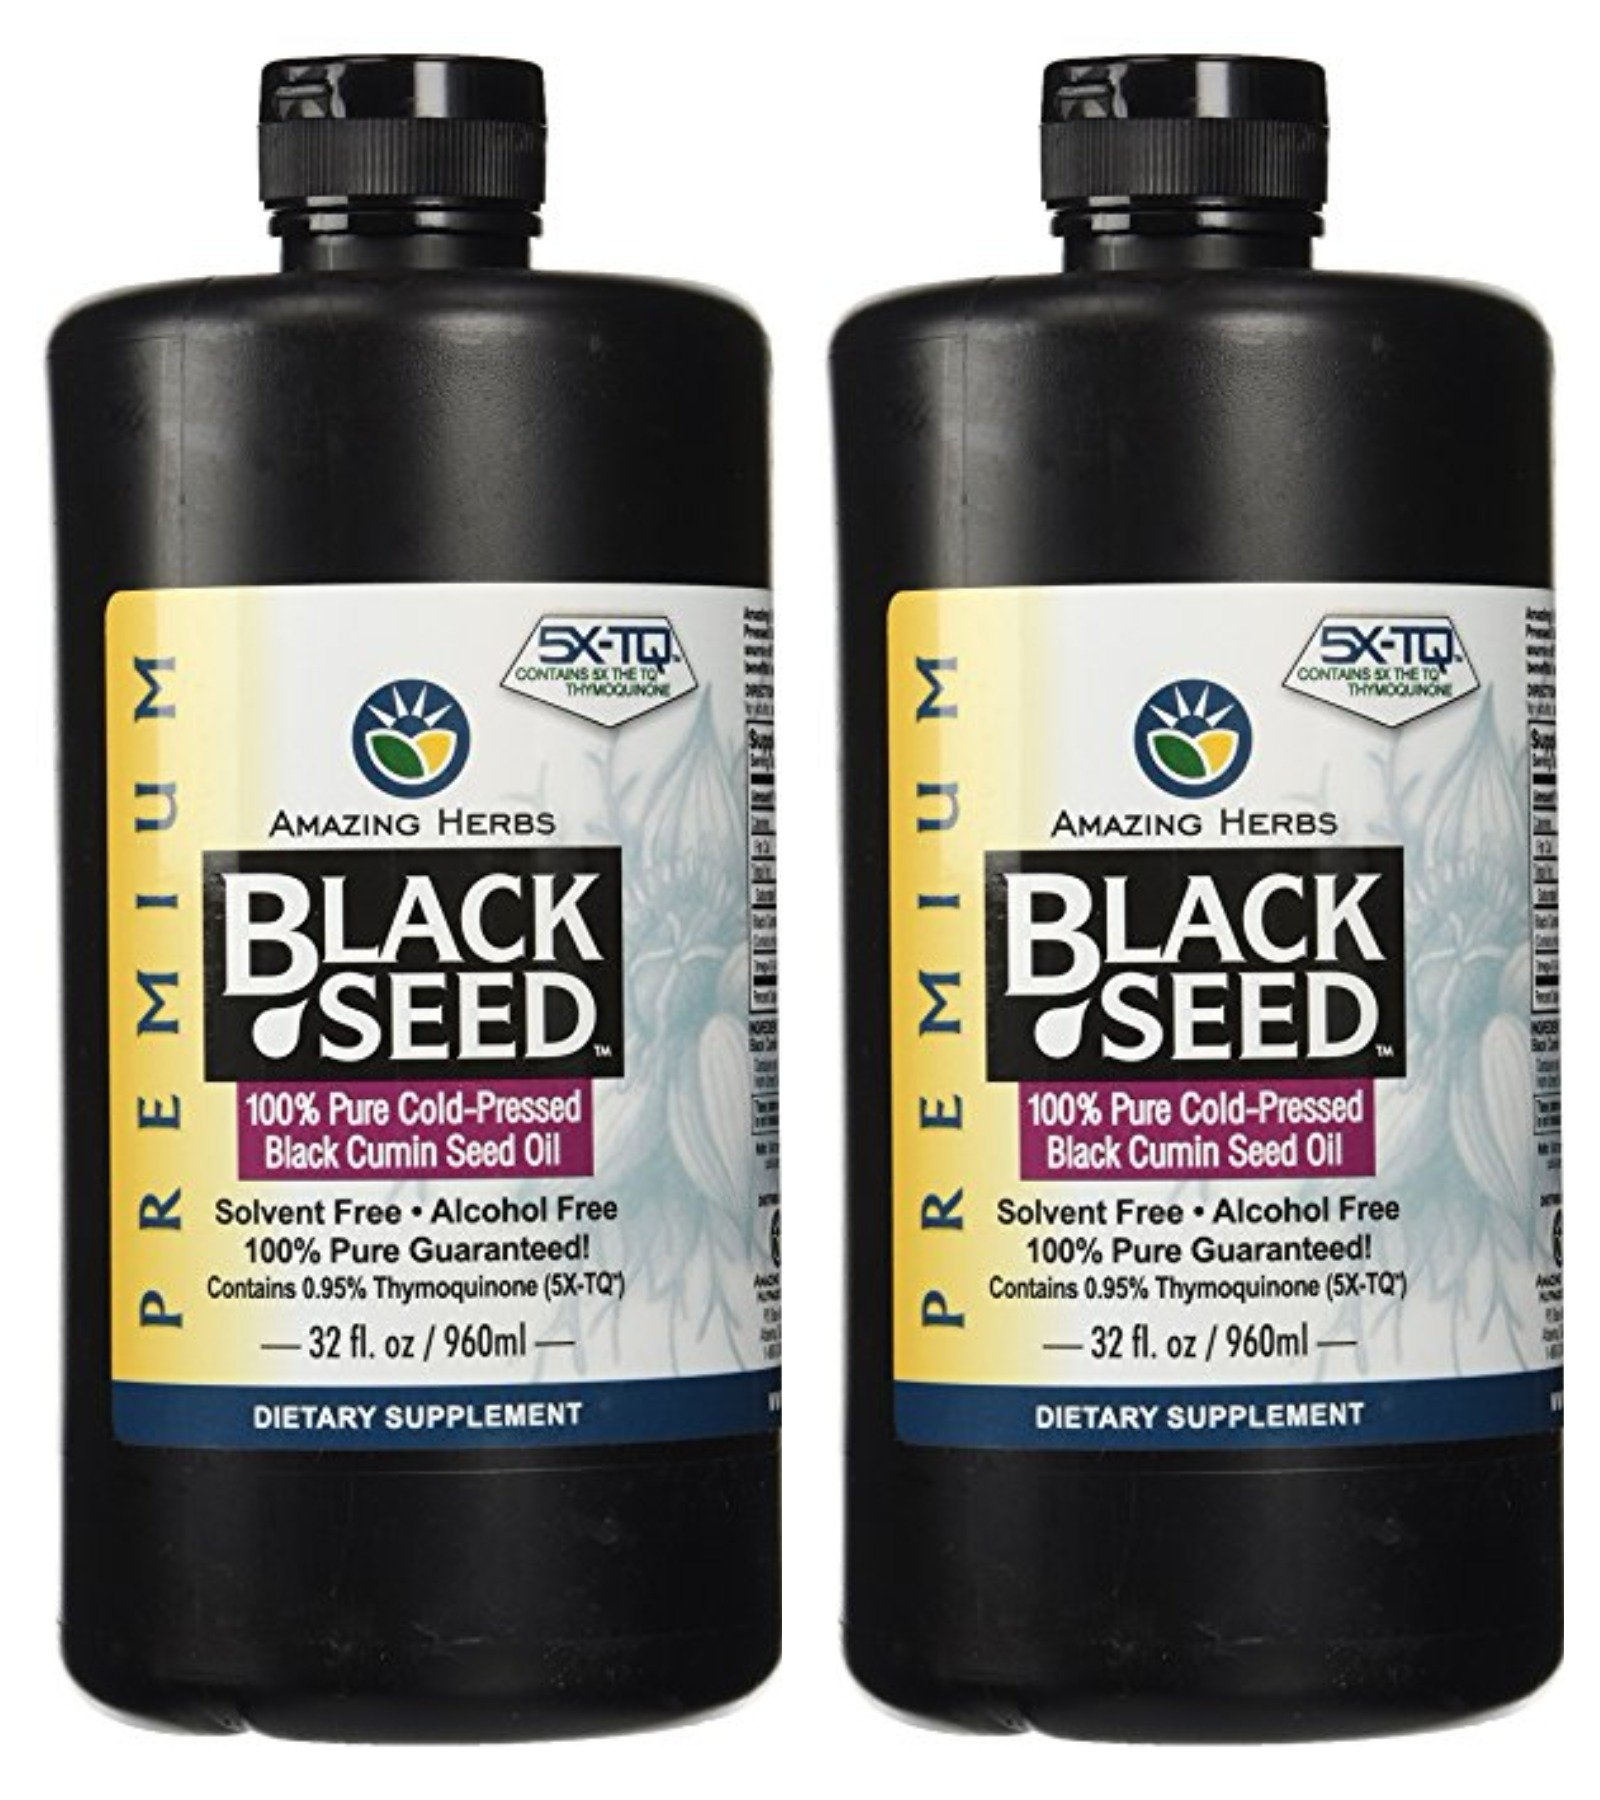 Amazing Herbs Black Seed Cold-Pressed Oil - 32oz (Pack of 2)